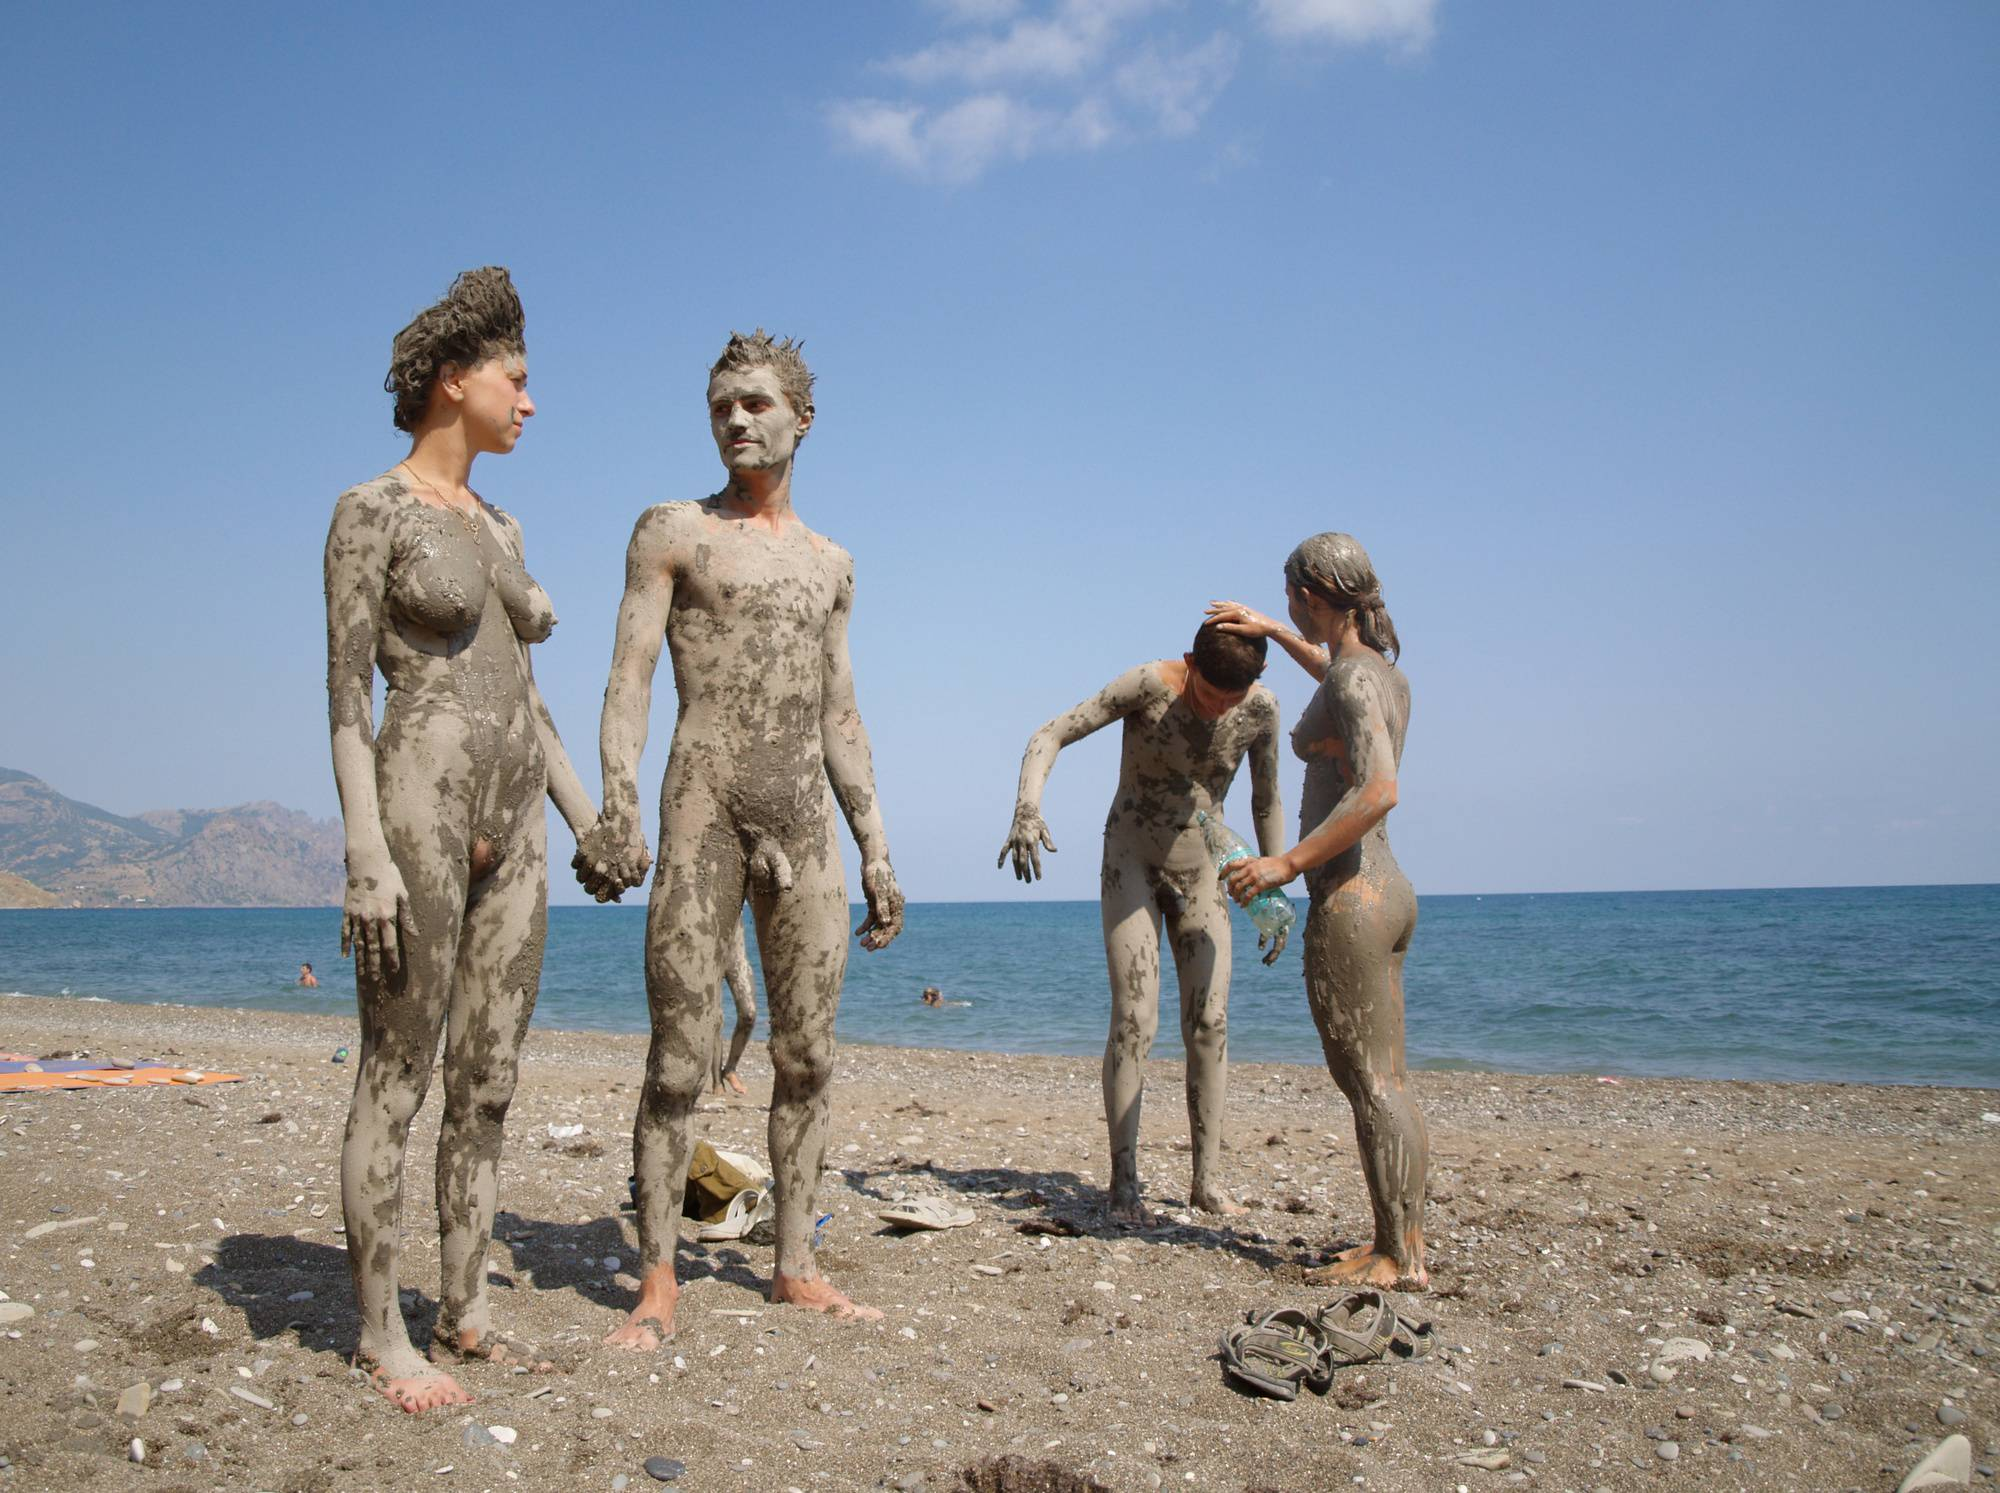 Dried Nudist Mud Statues - 1